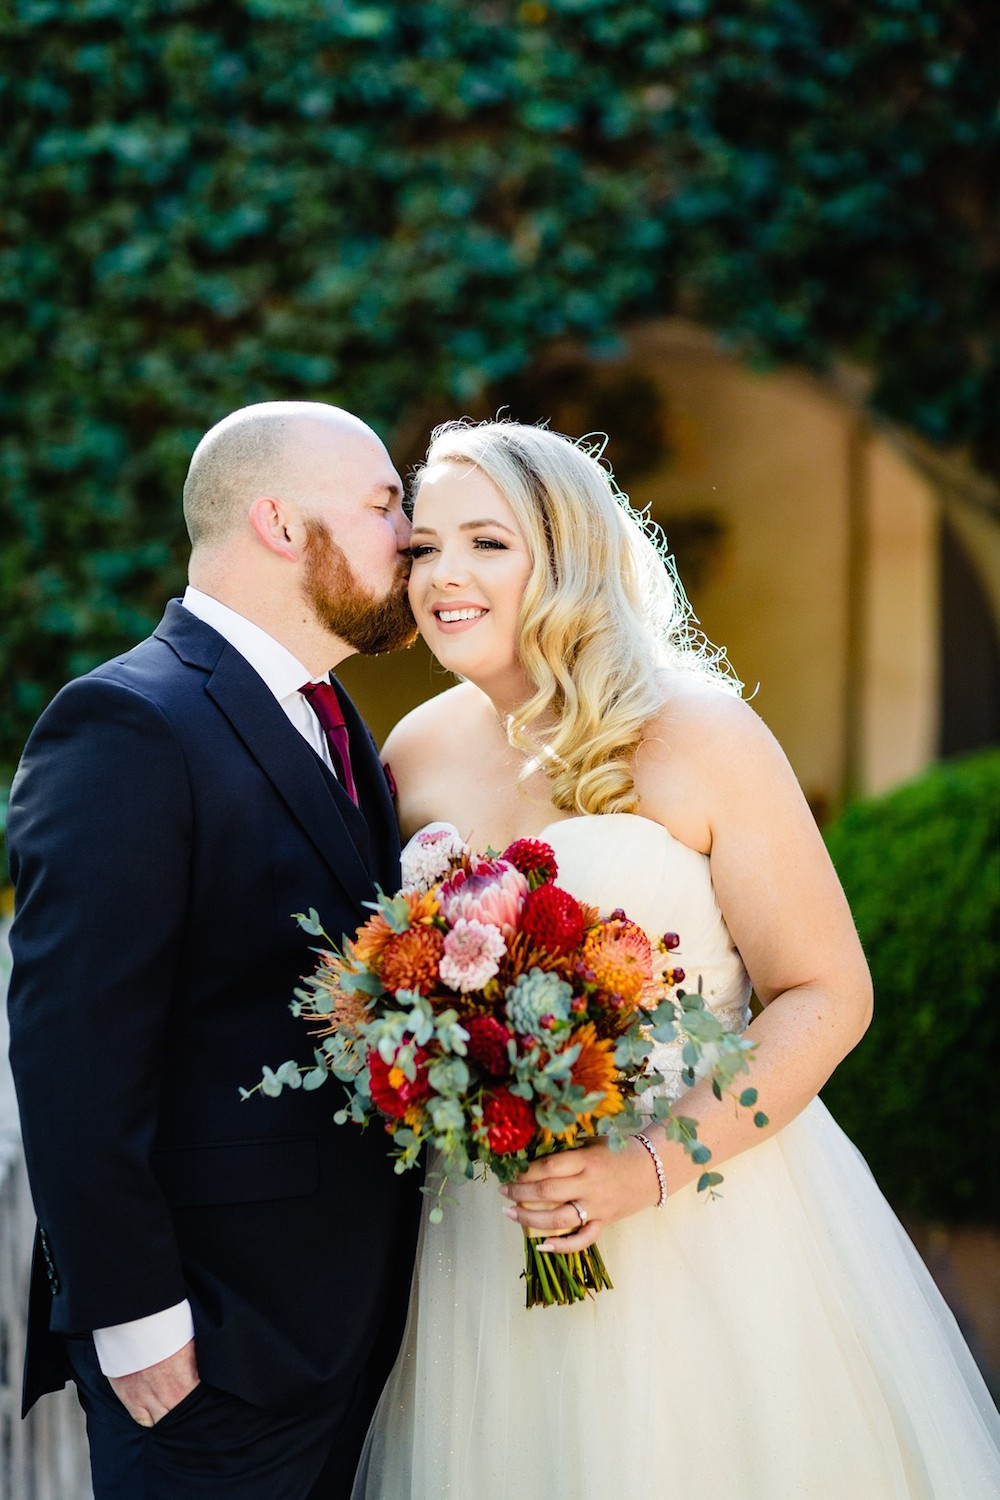 Bride being kissed on the cheek by her groom holding a colorful bouquet of flowers